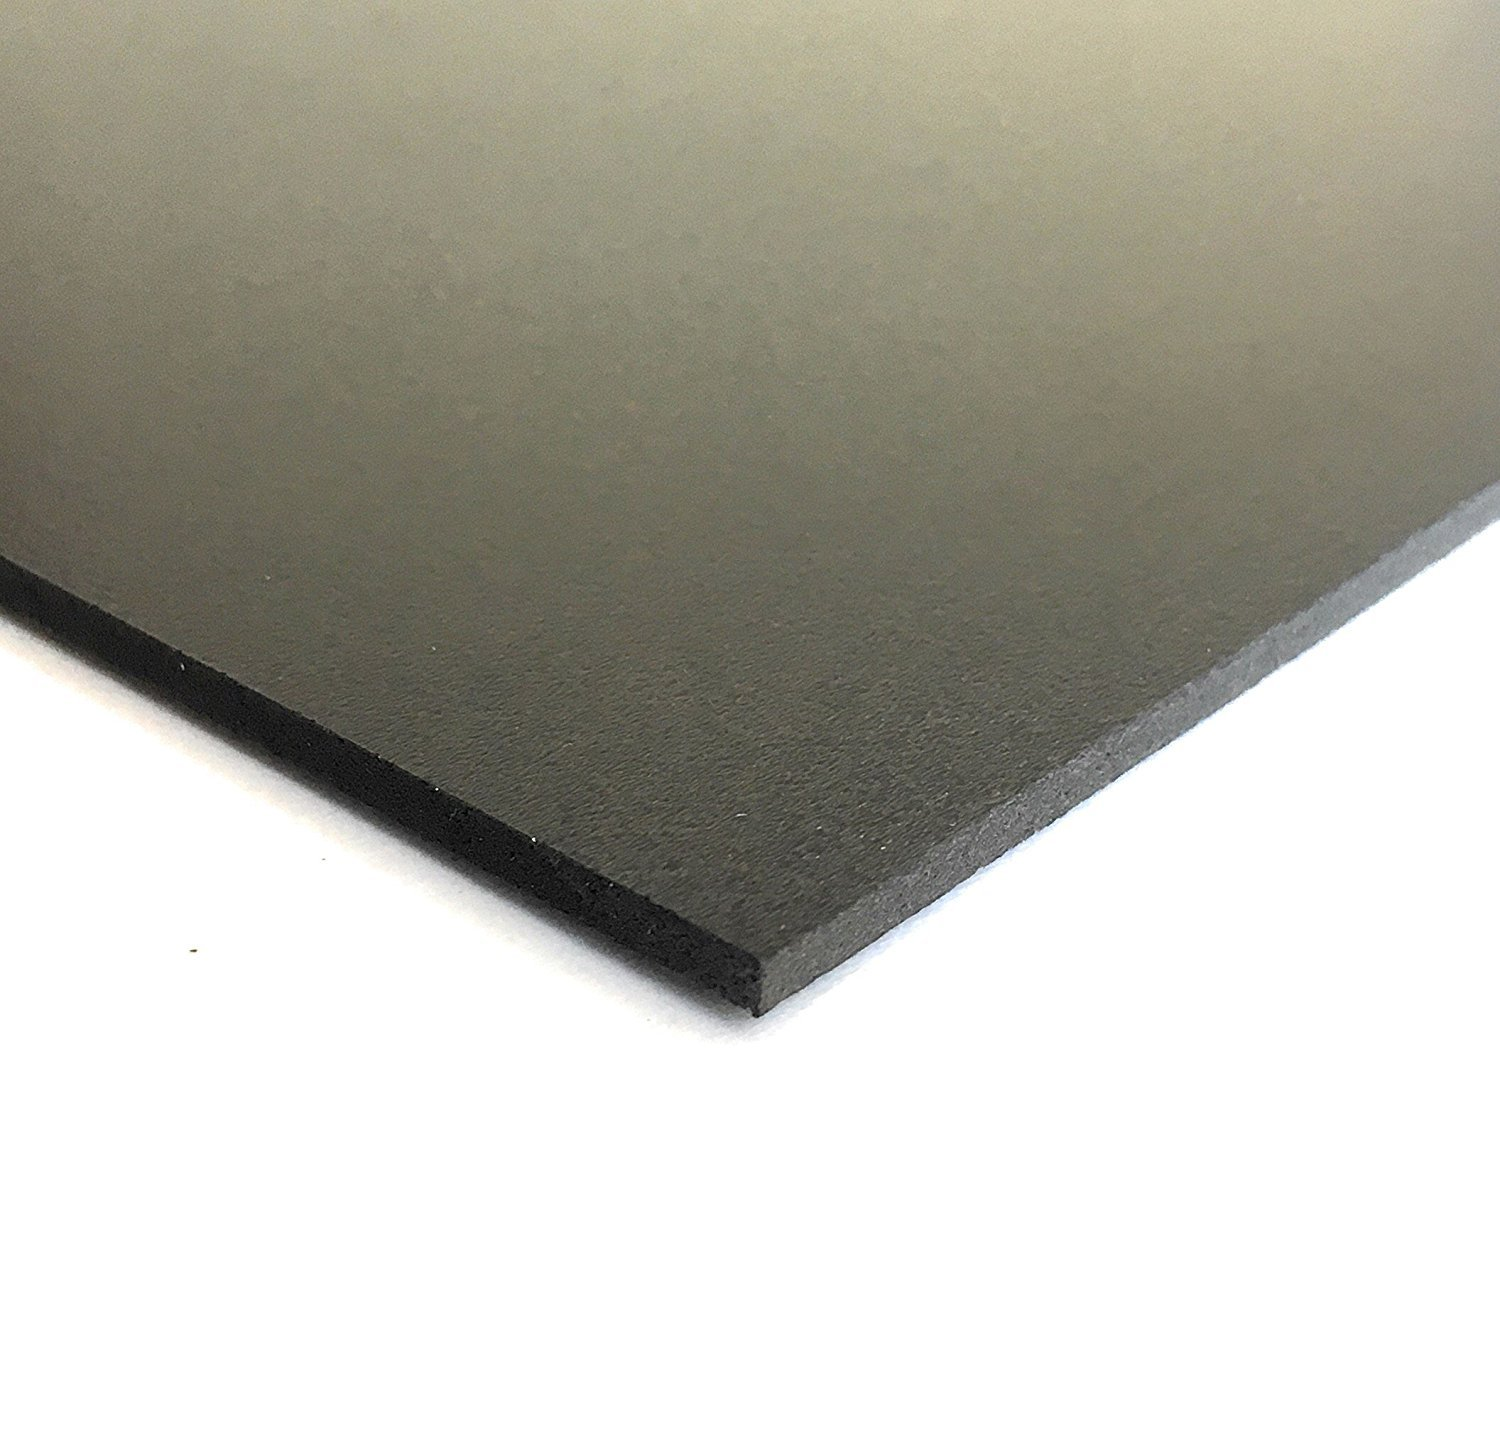 Expanded PVC Sheet – Lightweight Rigid Foam – 6mm (1/4Inch) – 12 x 12 Inches – Black – Ideal for Signage, Displays, and Digital/Screen Printing